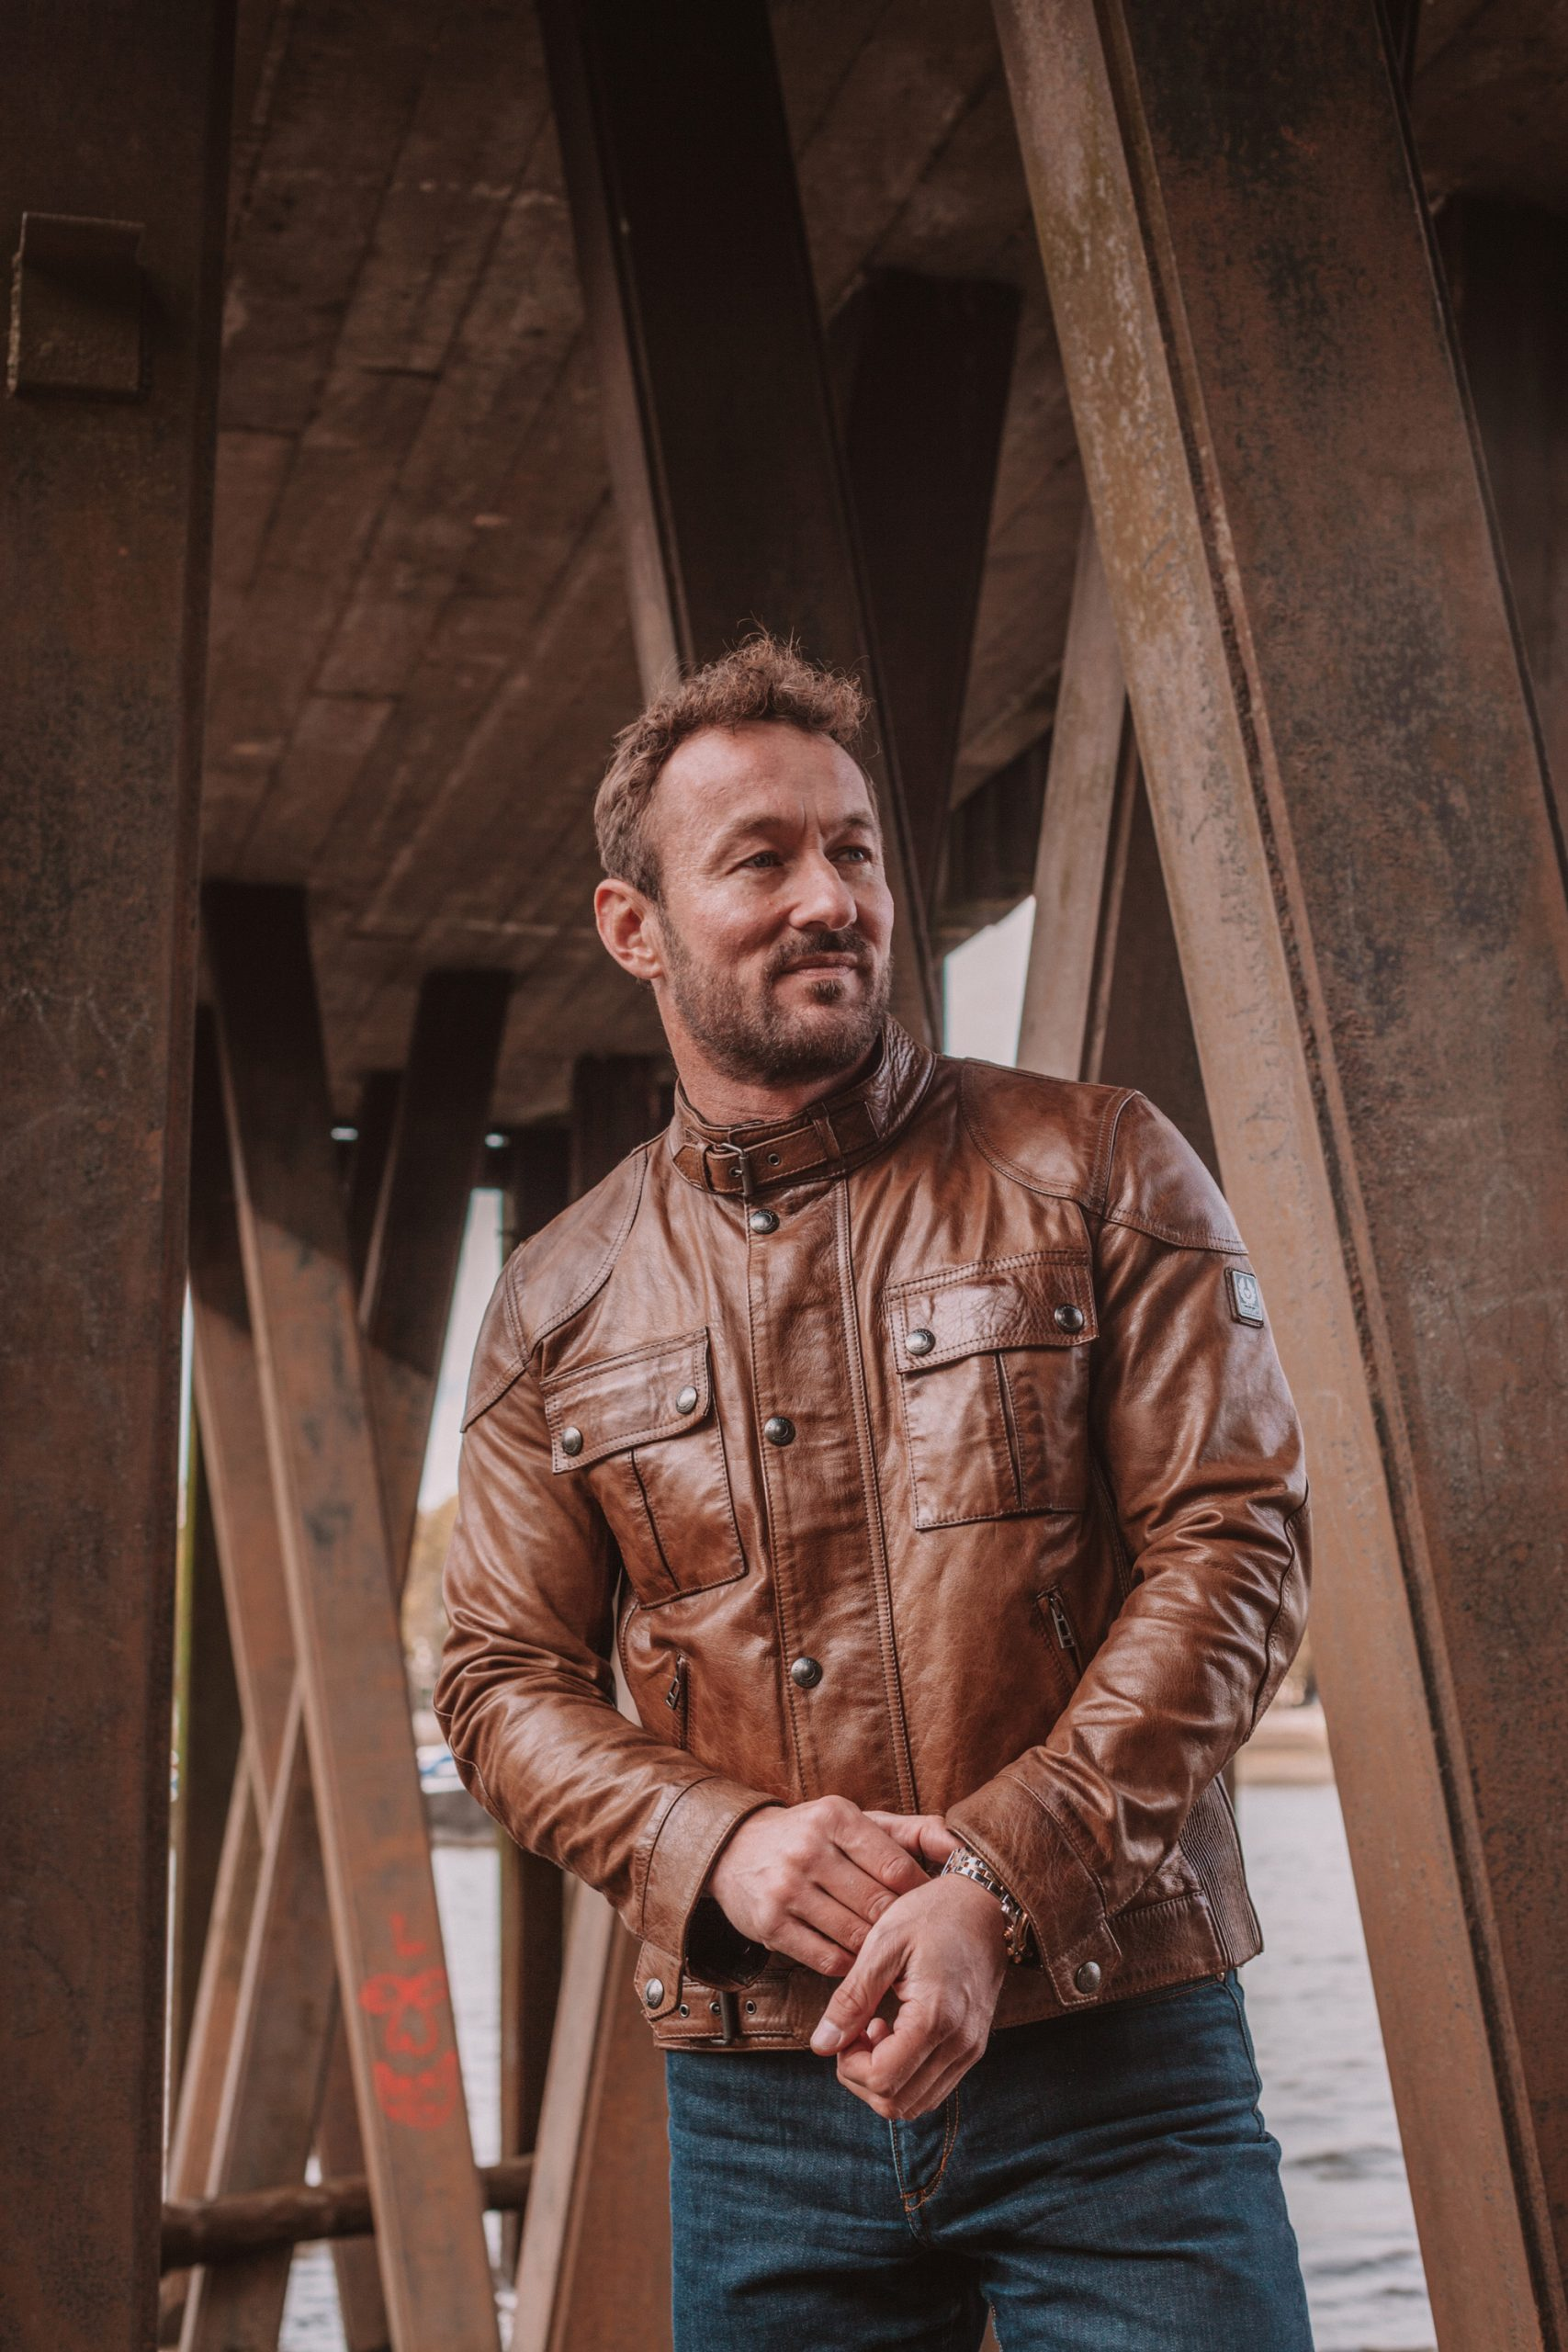 James Rostance wearing a leather jacket under a bridge